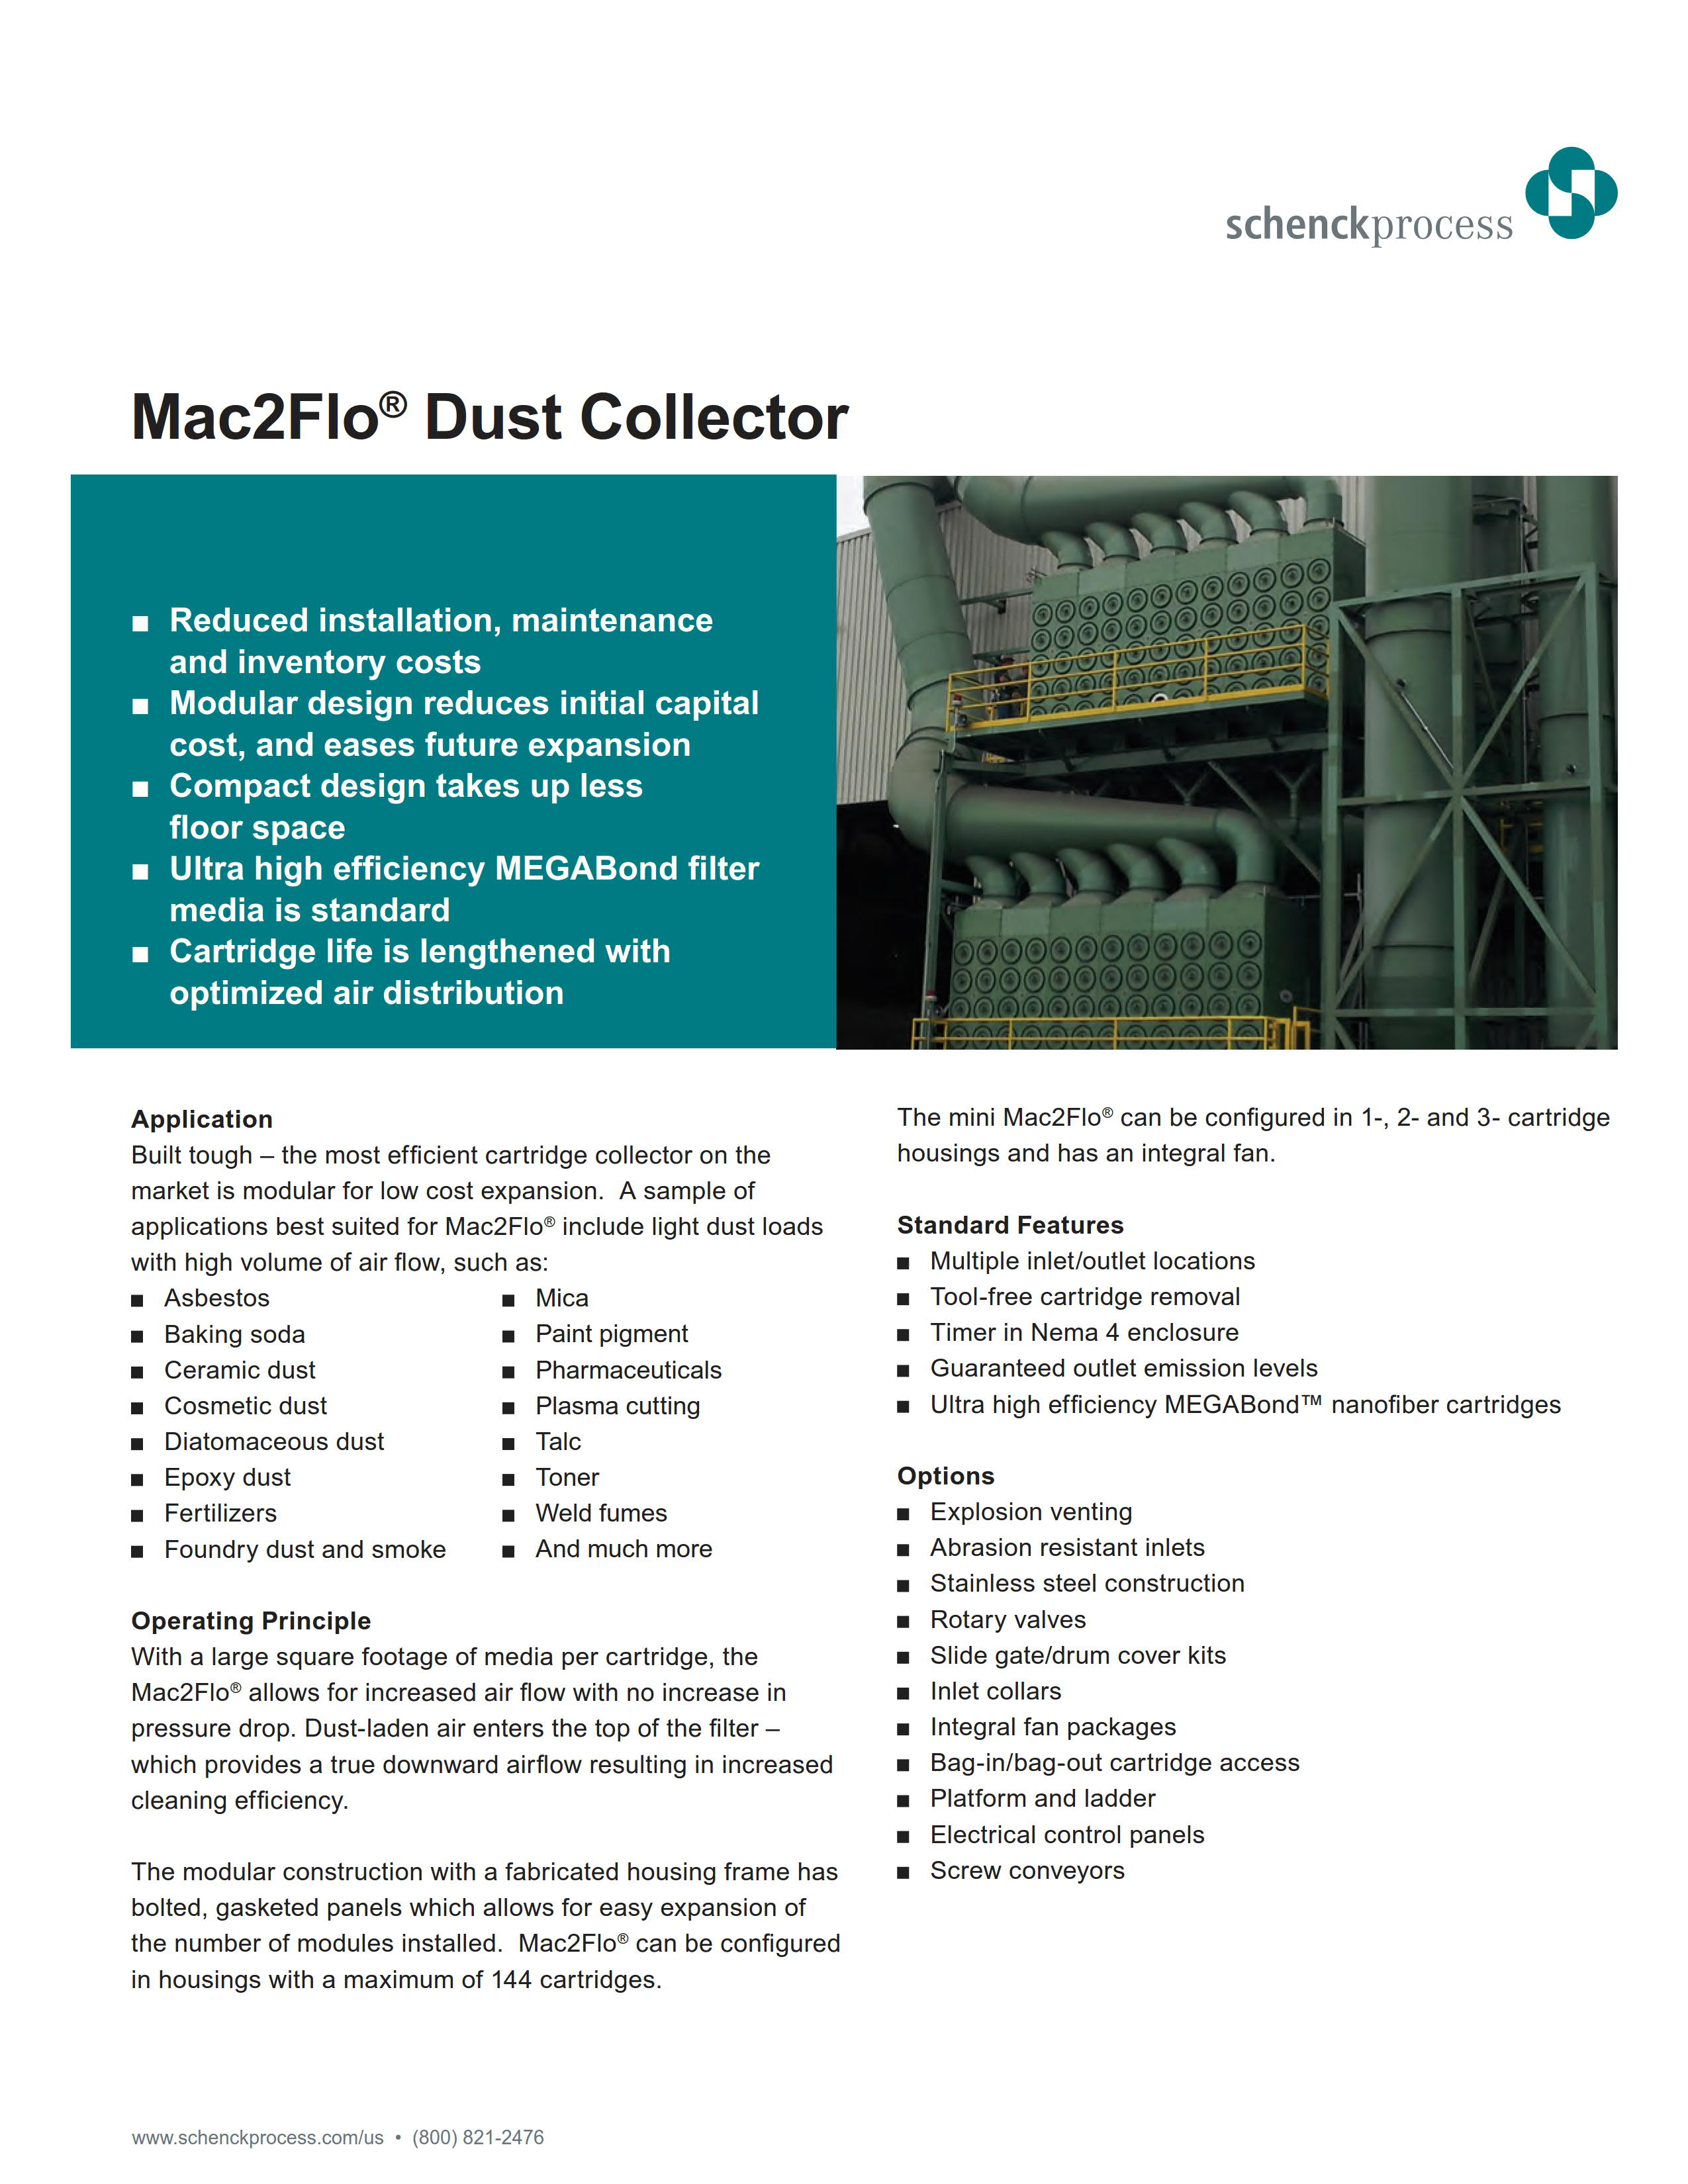 Mac2Flo Dust Collector